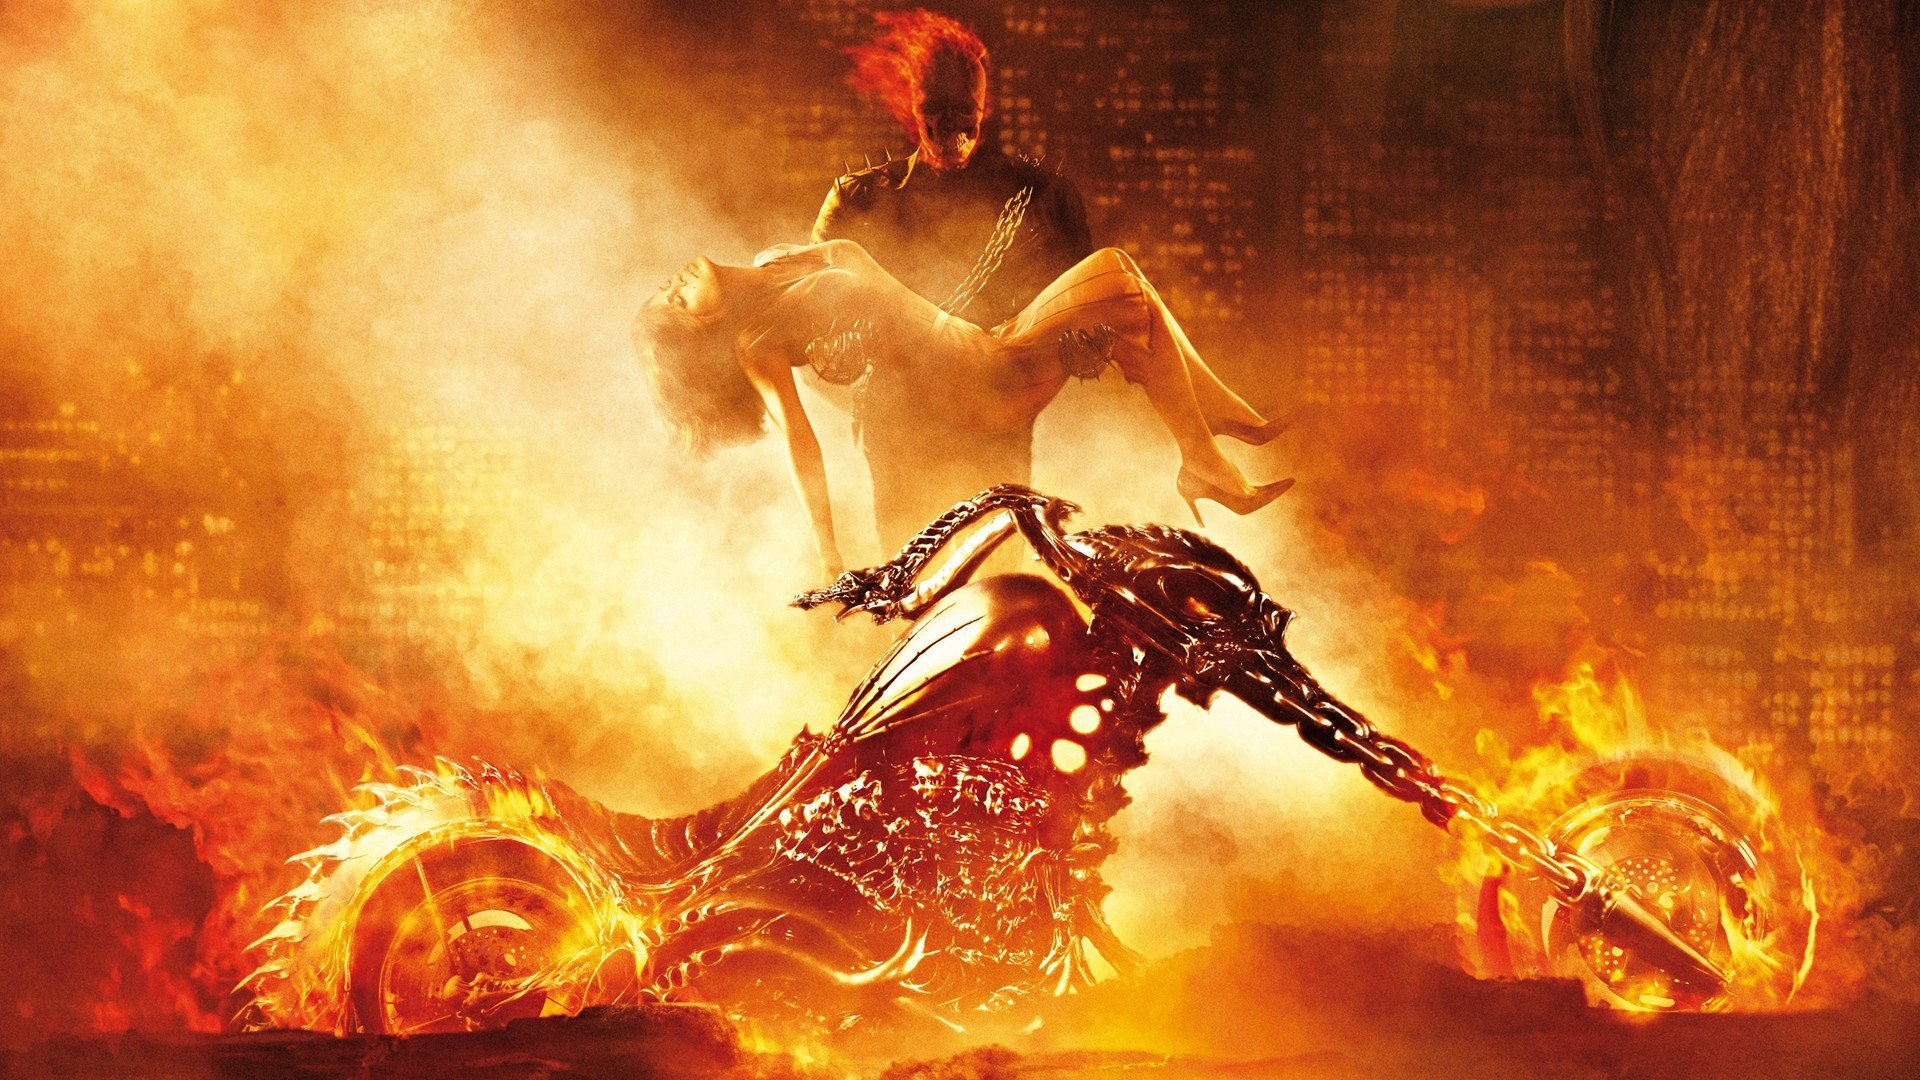 download full hd 1080p ghost rider movie pc wallpaper id:198550 for free